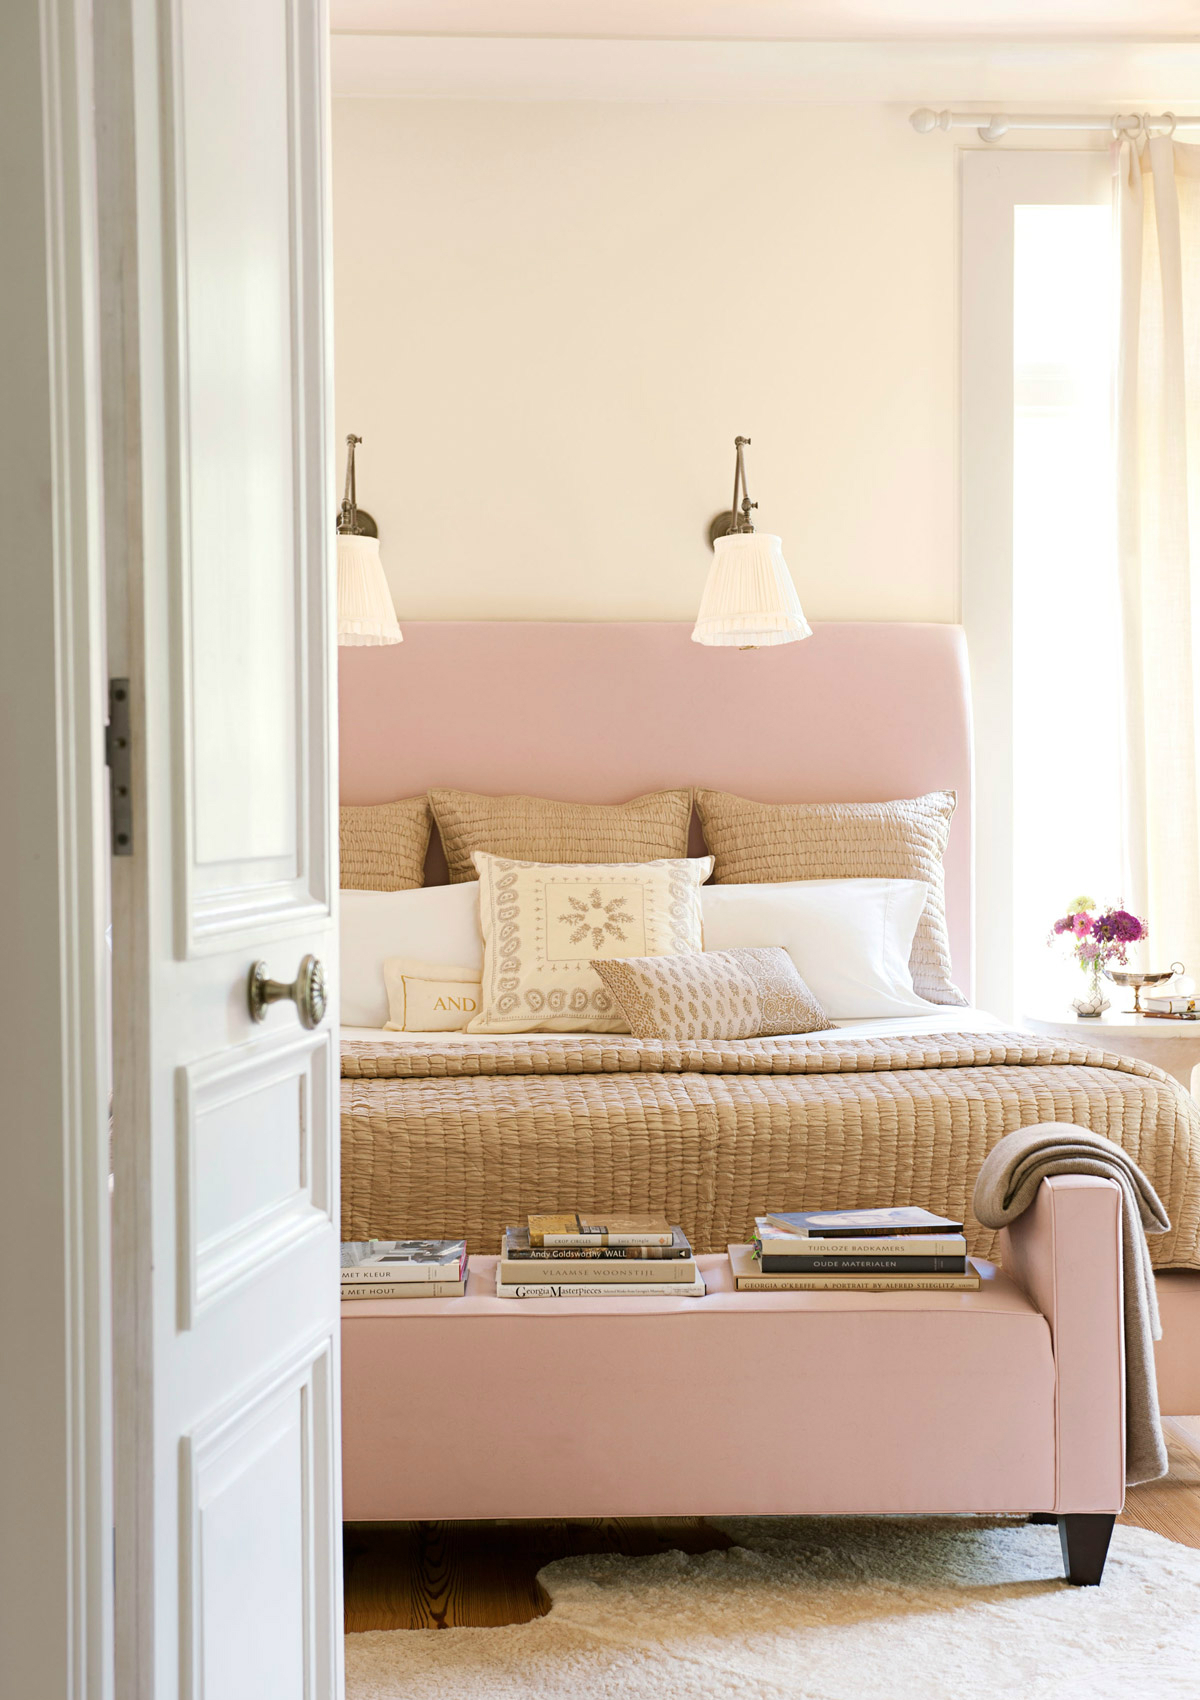 Girls Bedroom: Mature, Glamorous and Sweet in Pink Girls Bedroom Girls Bedroom: Mature, Glamorous and Sweet in Pink 7